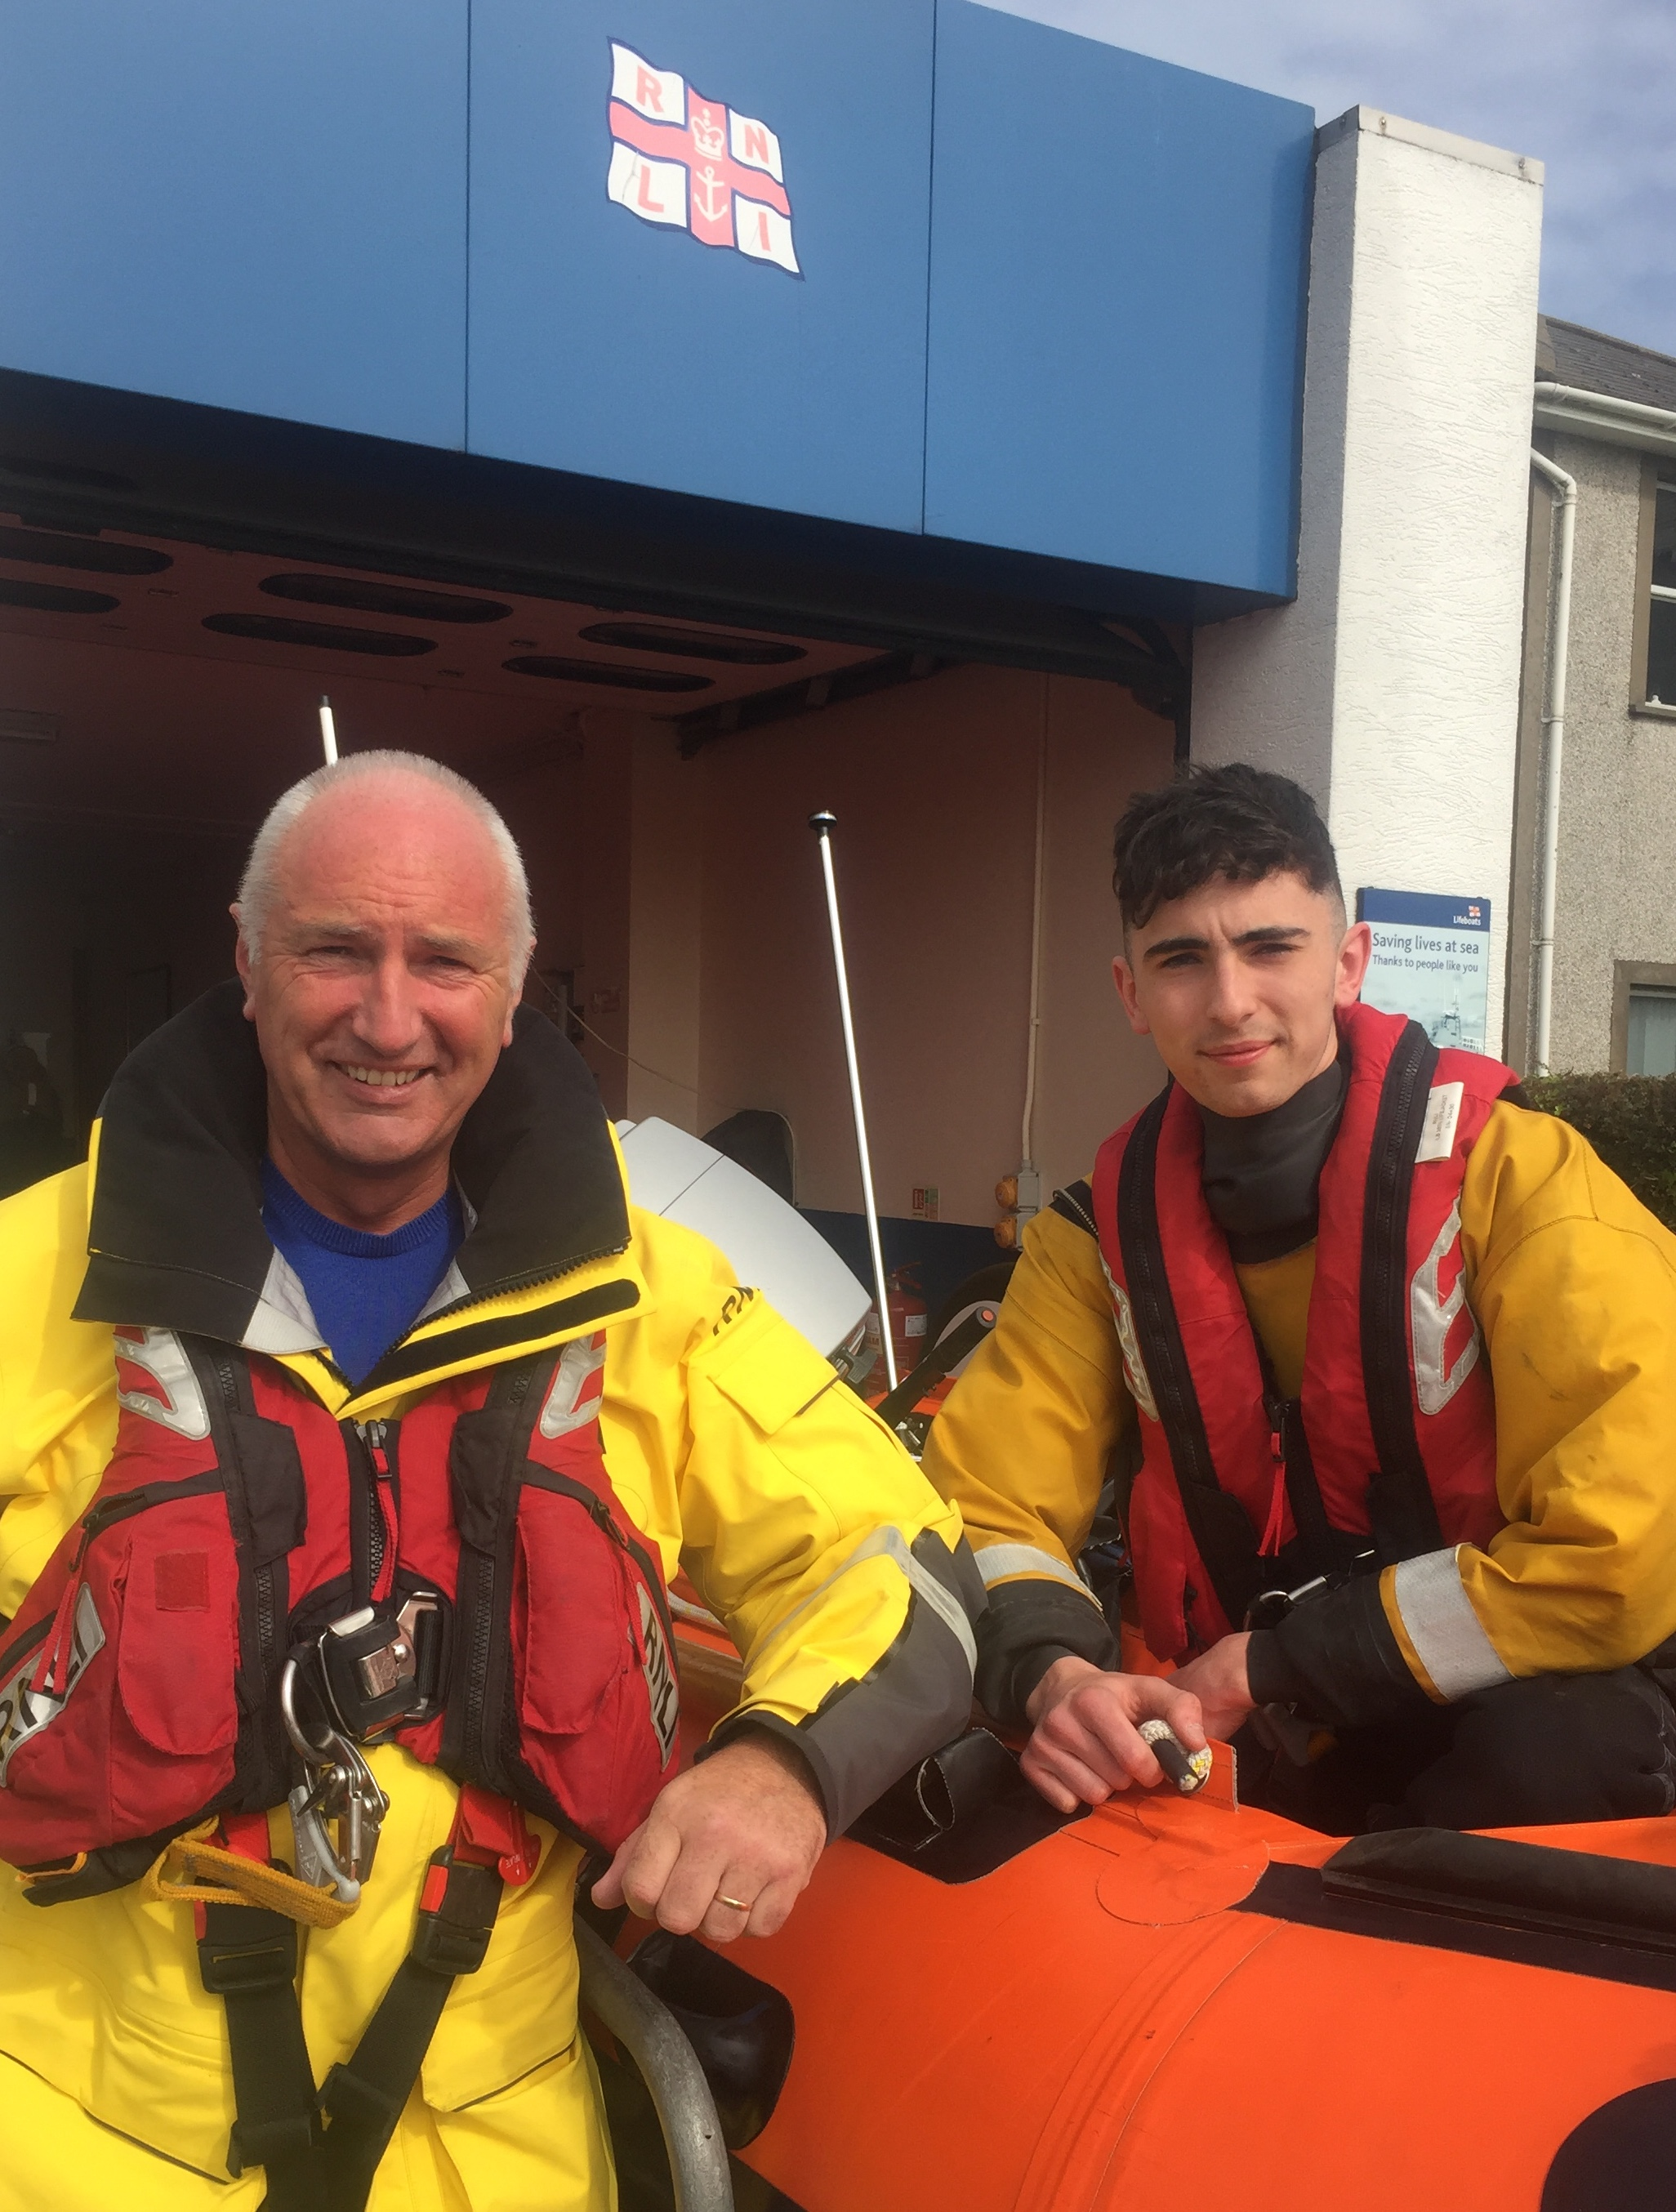 Larne RNLI Coxswain Frank Healy and his son crew member Jack Healy